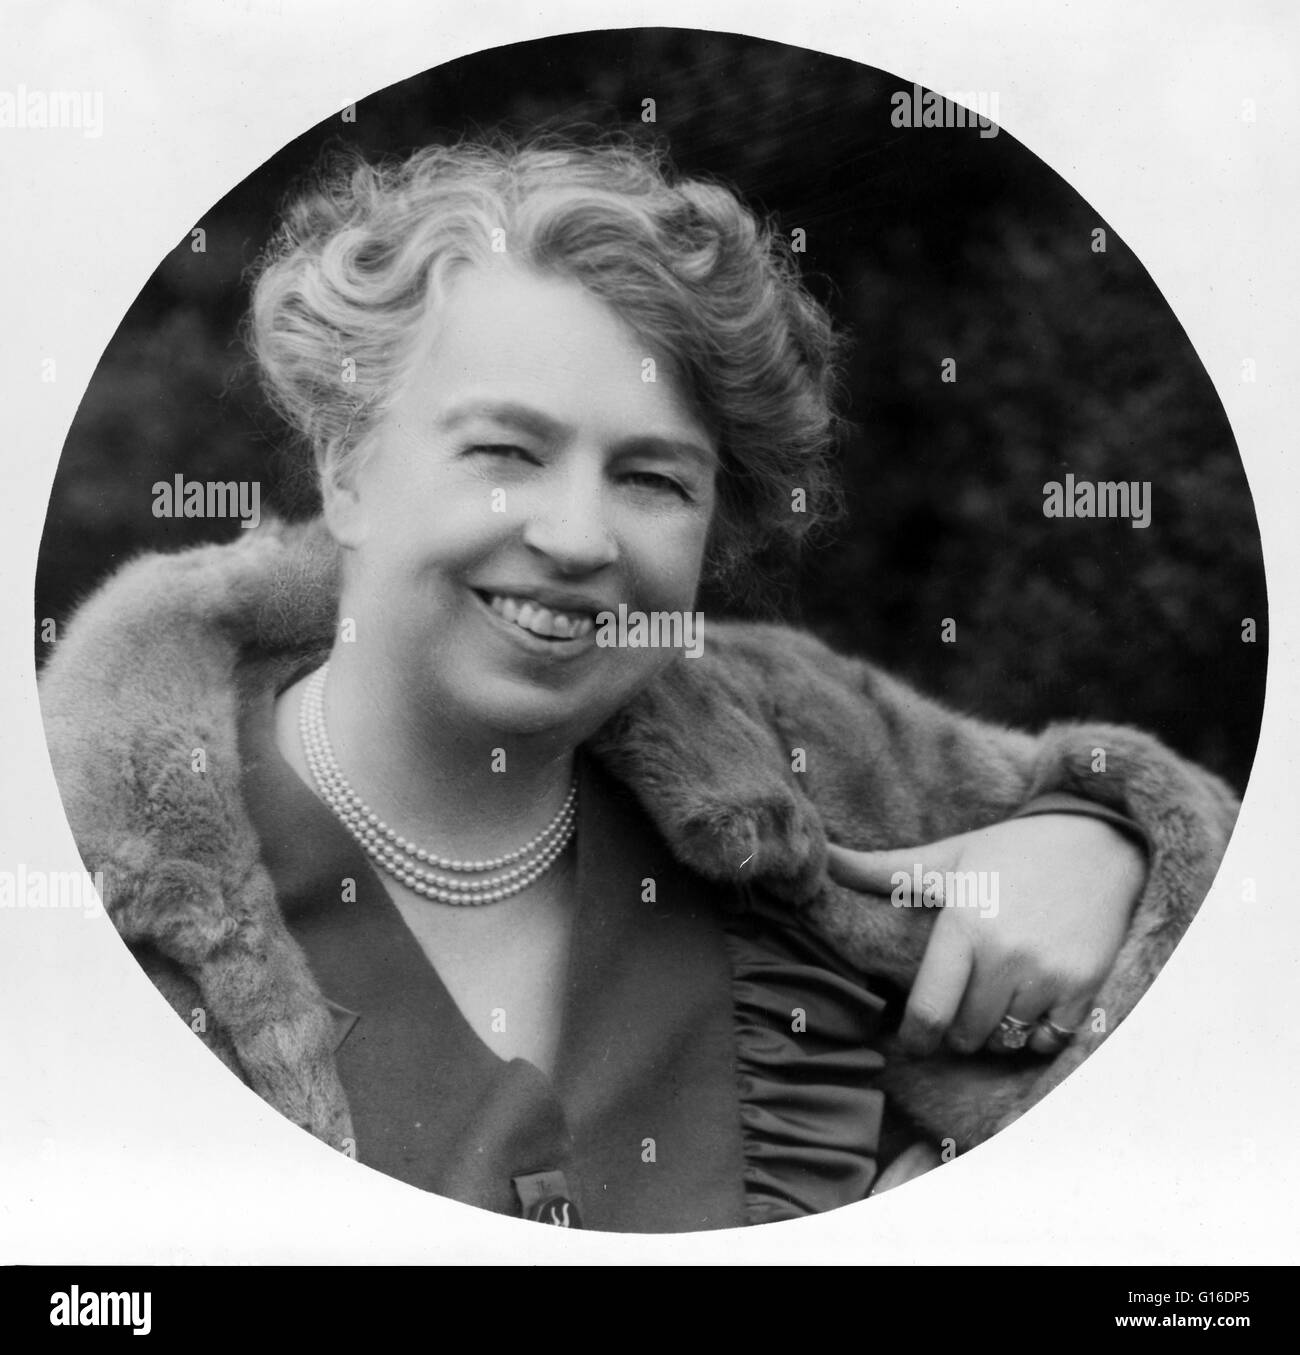 Anna Eleanor Roosevelt (October 11, 1884 - November 7, 1962) was an American politician. She was the longest serving - Stock Image